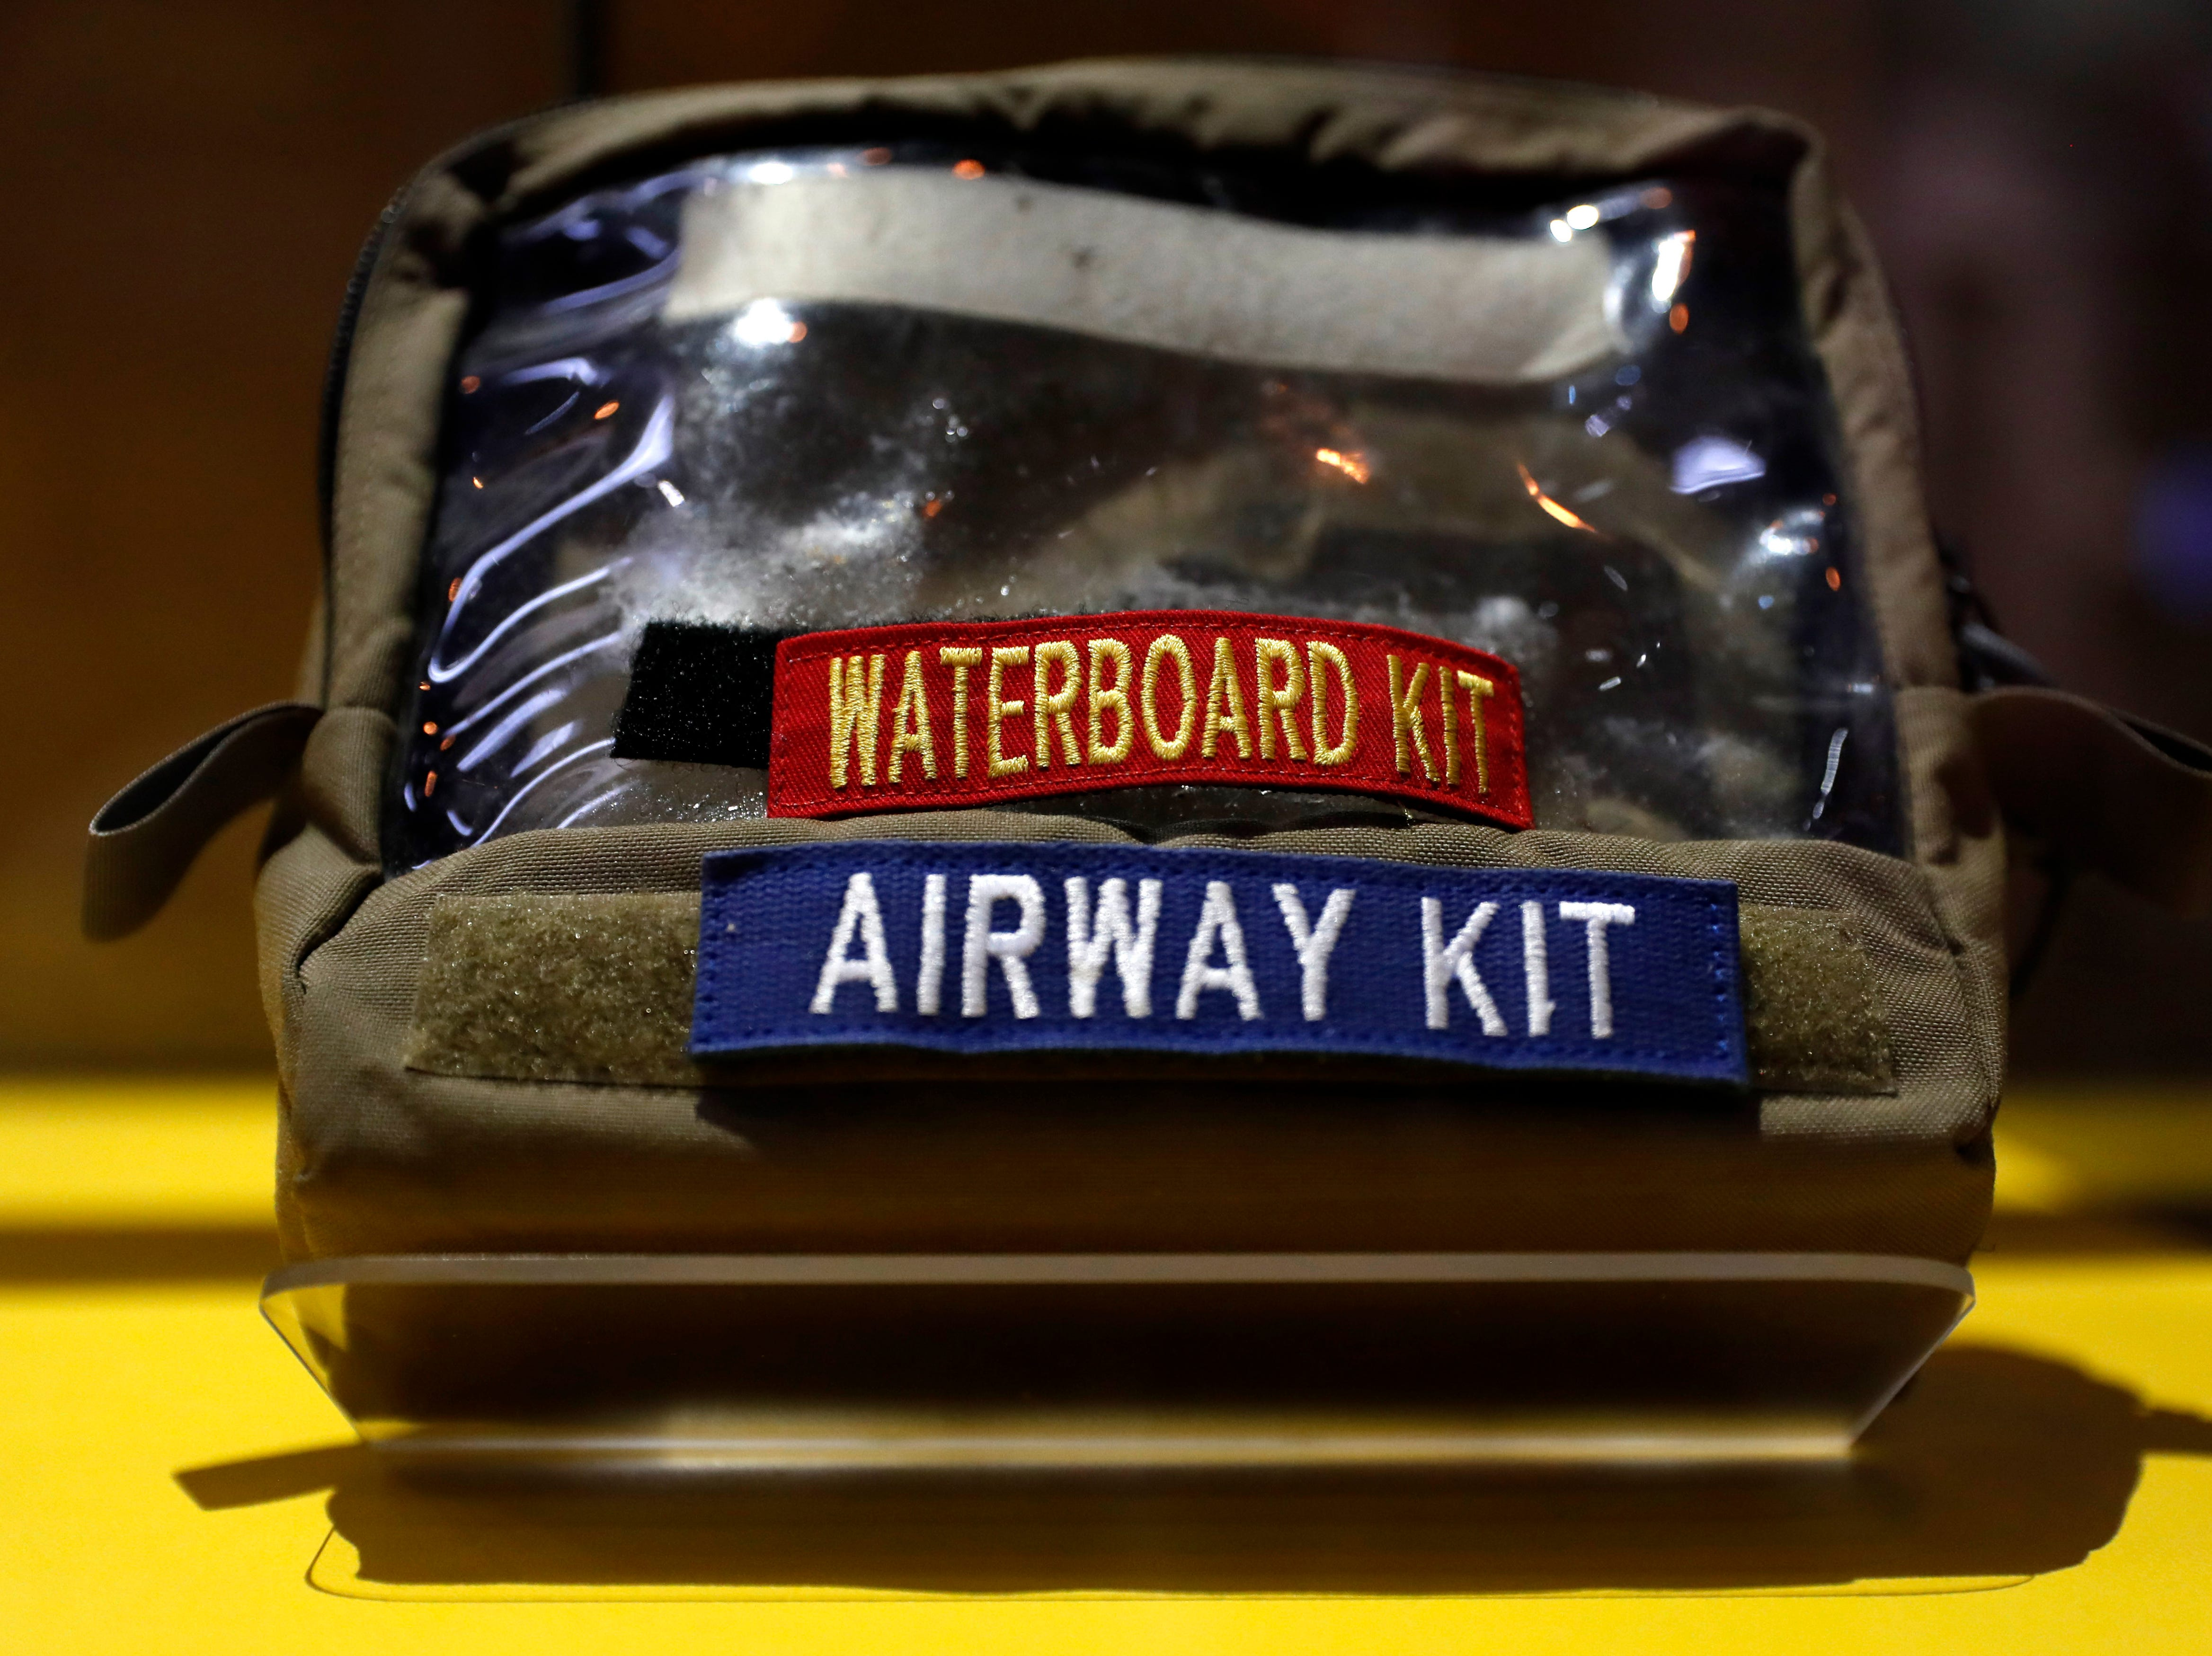 A waterboard kit is part of an exhibit on torture in the new International Spy Museum.